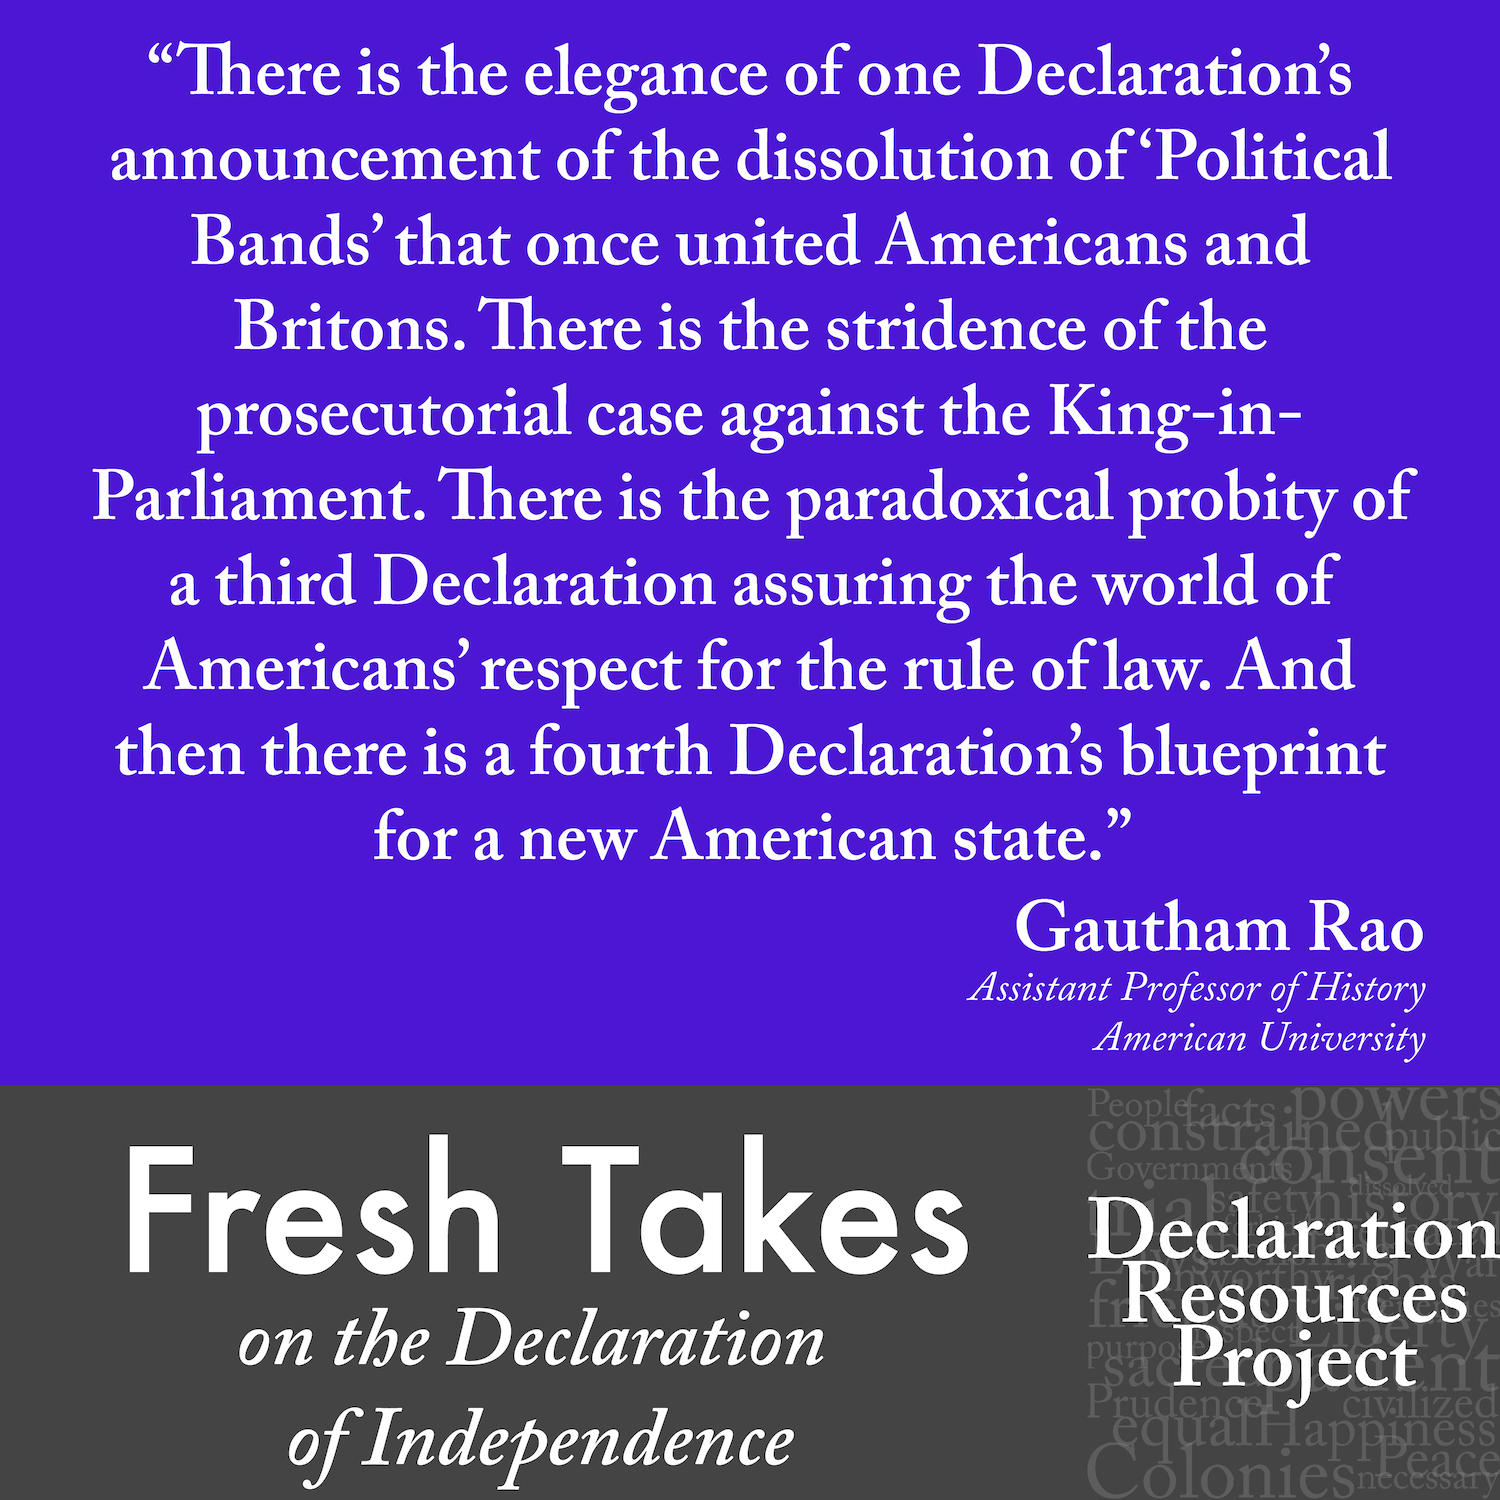 Gautham Rao's Fresh Take on the Declaration of Independence